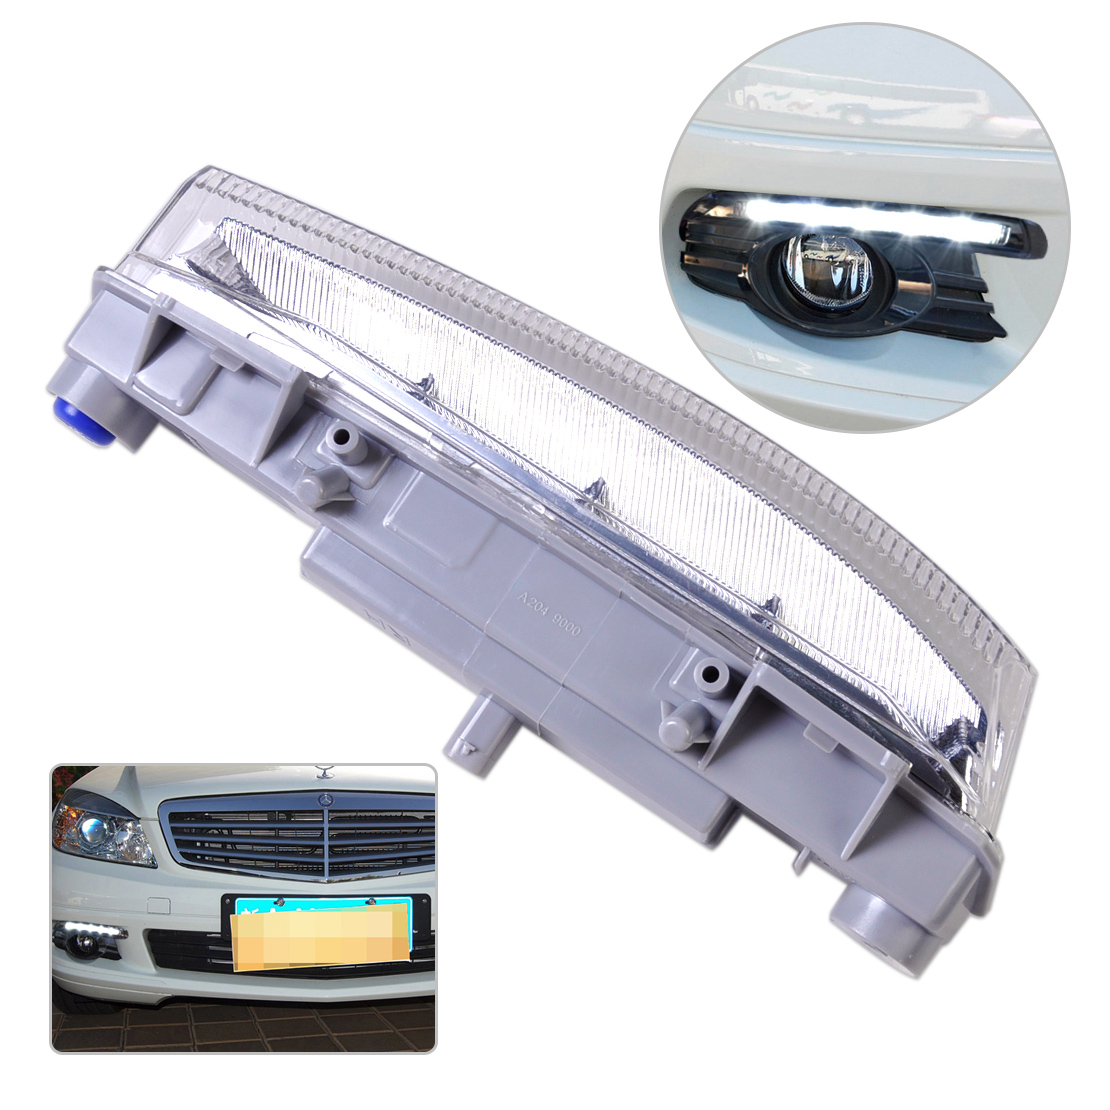 beler DRL Fog Light Lamp Right 2049069000 204 906 90 00 Fit for Mercedes Benz W204 W212 S204 R172 High Quality 1 pcs right side 2048202256 front fog lamp with bulb bumper light for mercedes benz c class w204 2006 2011